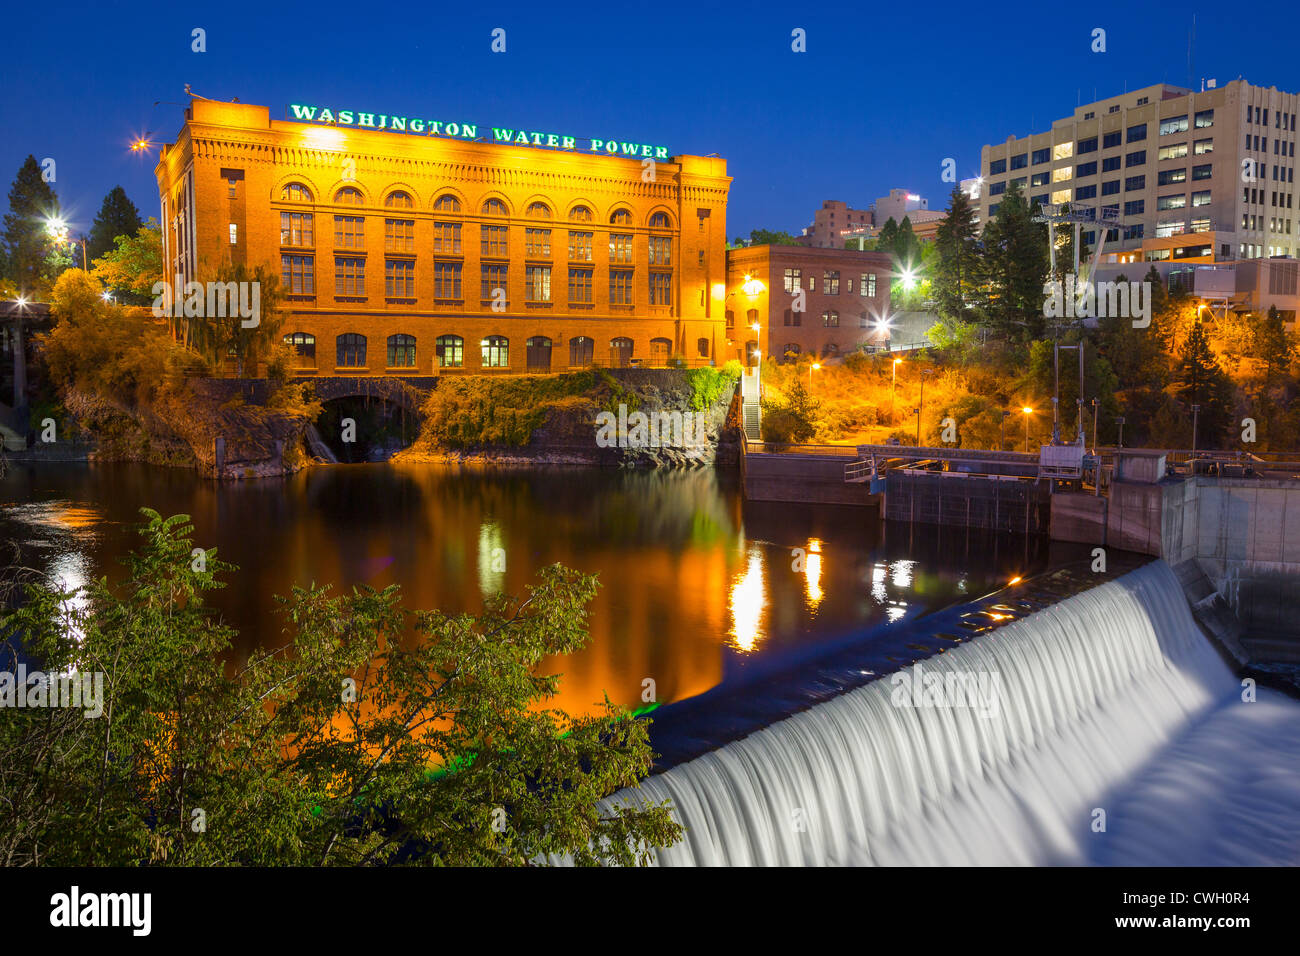 Washington Water Power building à Spokane, Washington la nuit Photo Stock